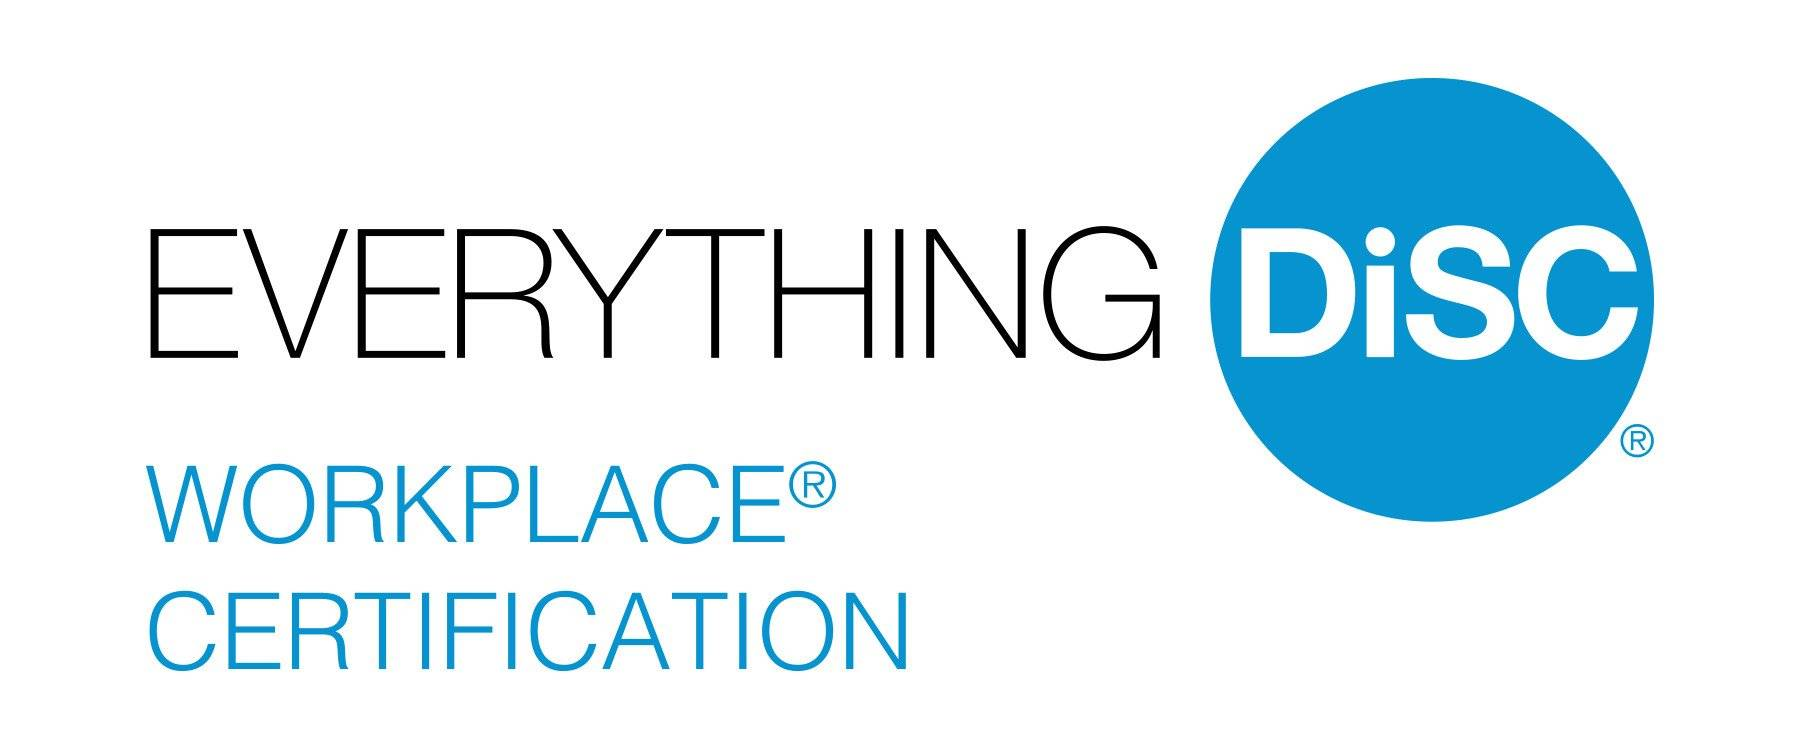 DiSC_Profiles_Everything_DiSC_Workplace_Certification